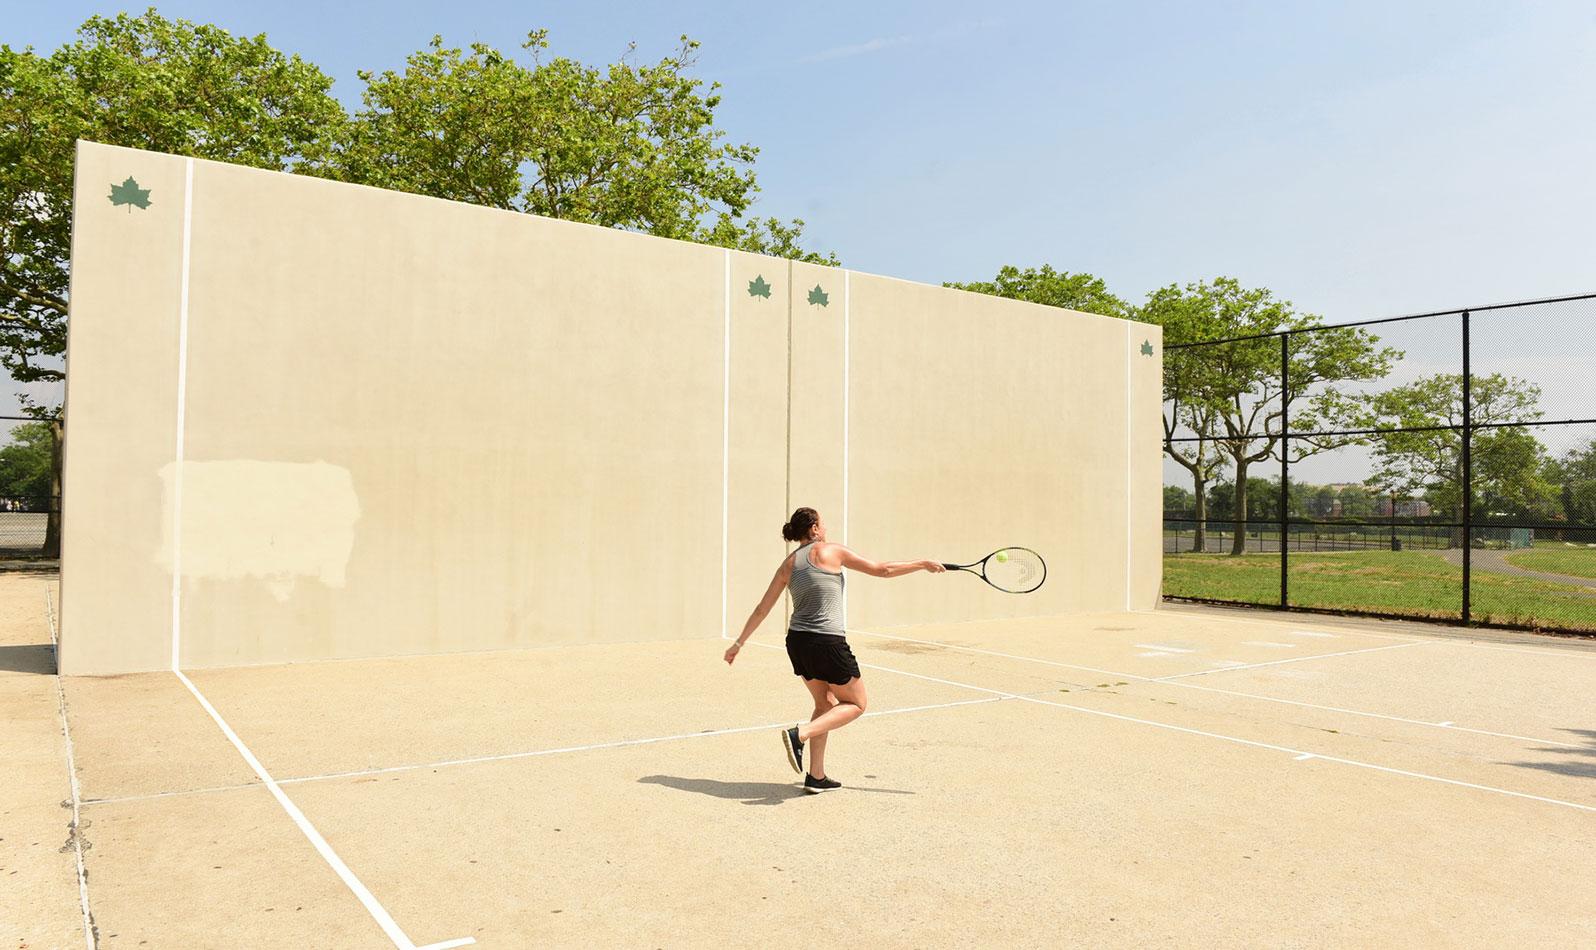 We also have tennis courts and handball courts, and a dog run for your pals.